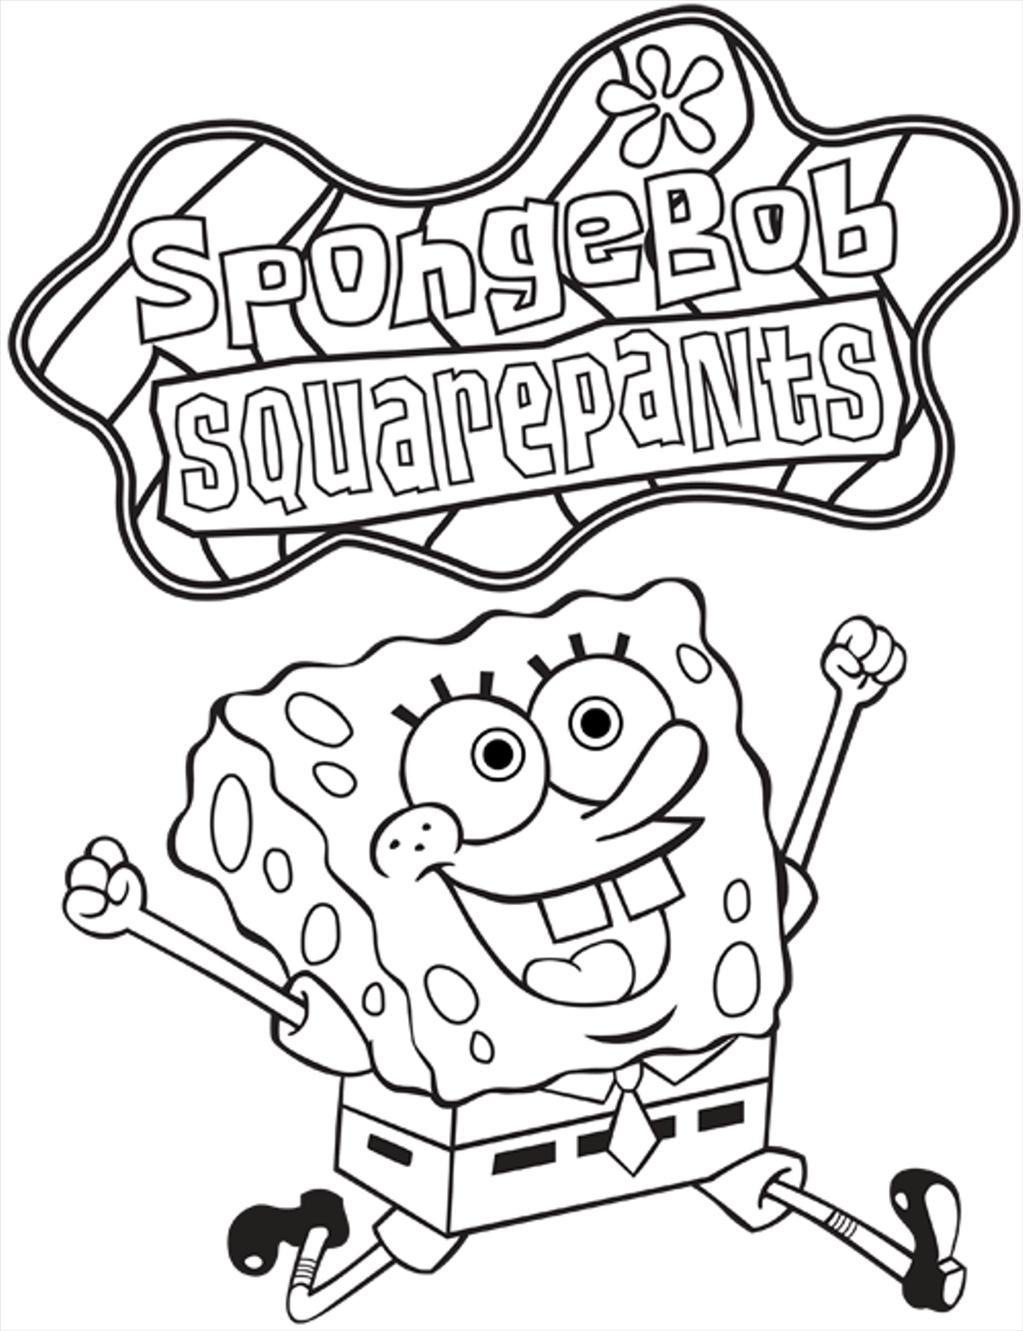 Spongebob Squarepants Coloring Pages To Print